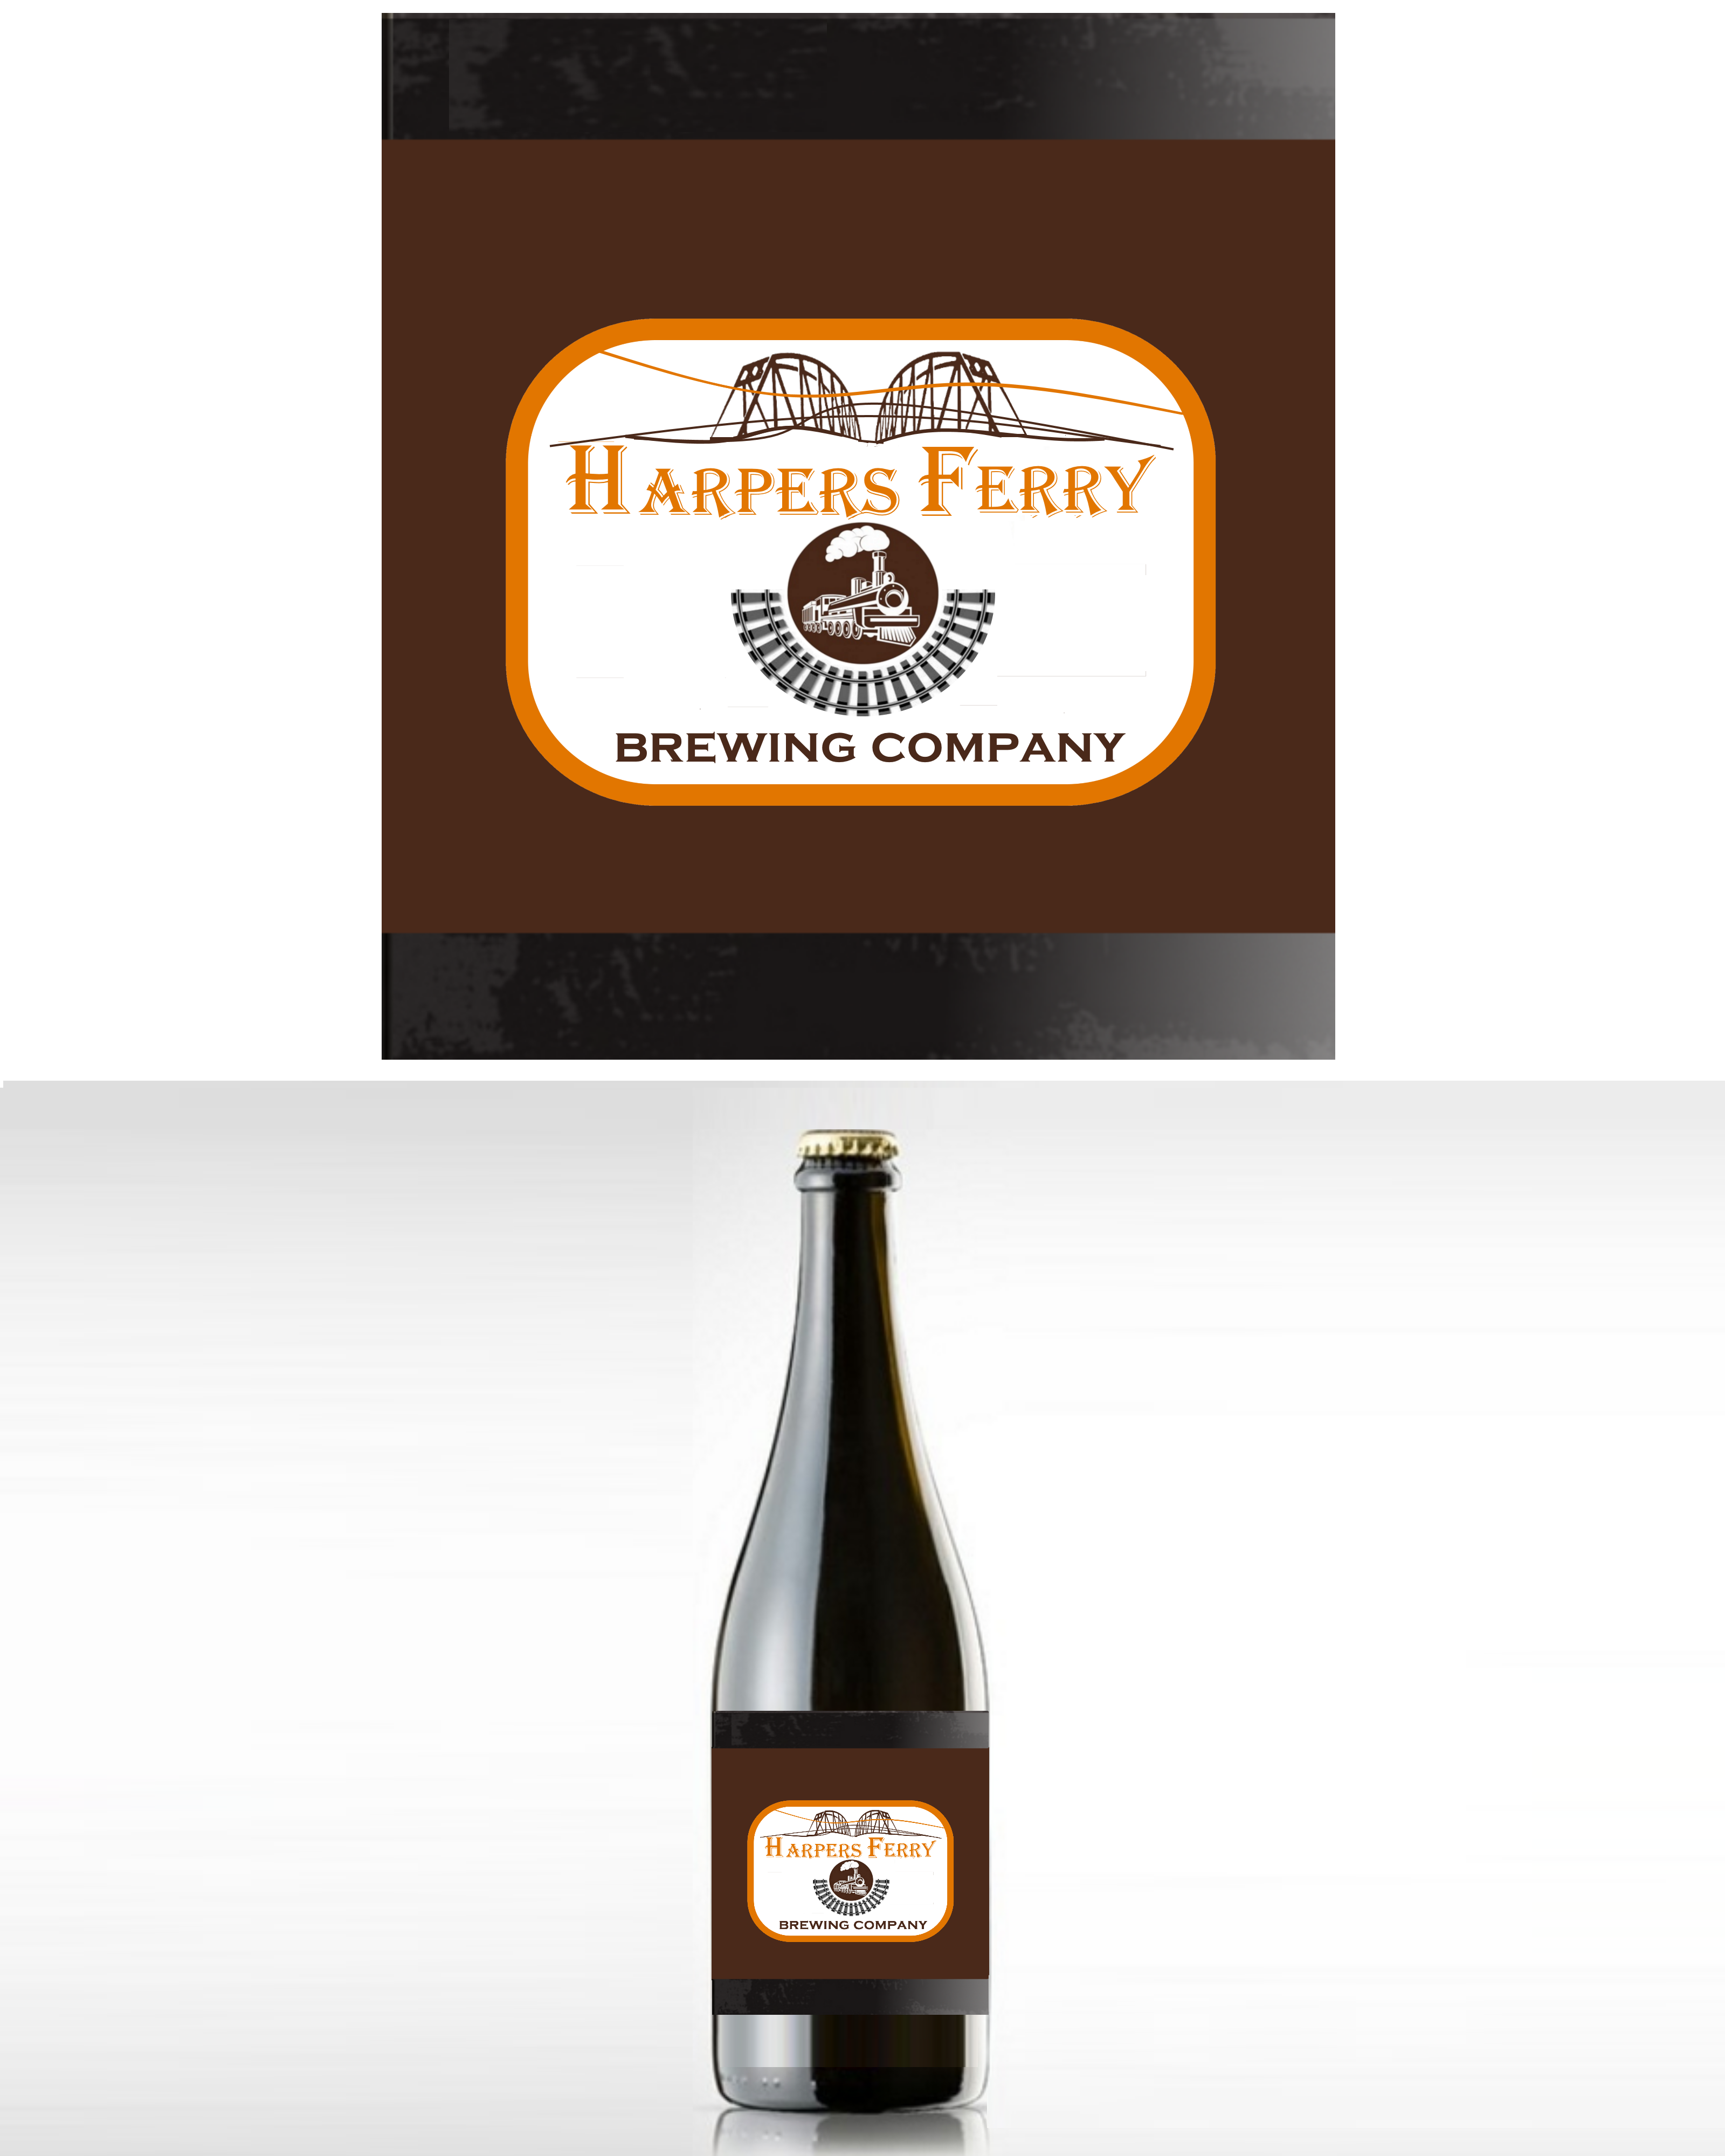 Logo Design by Roberto Bassi - Entry No. 52 in the Logo Design Contest Unique Logo Design Wanted for Harpers ferry brewing company.